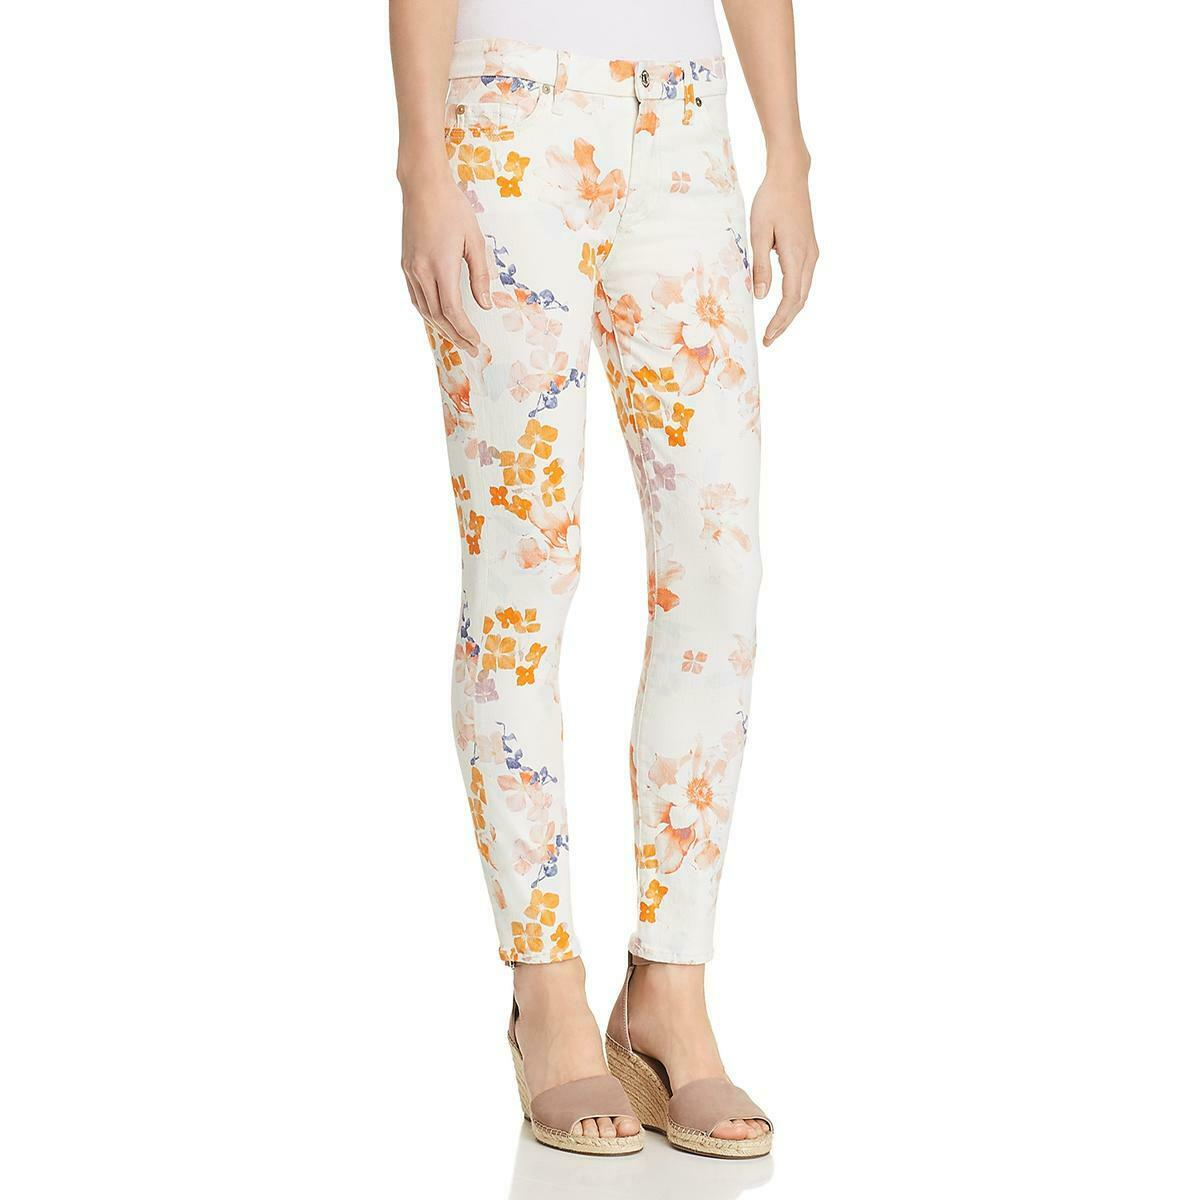 7 For All Mankind Womens Ivory Denim Skinny Ankle Jeans 24 BHFO 9371